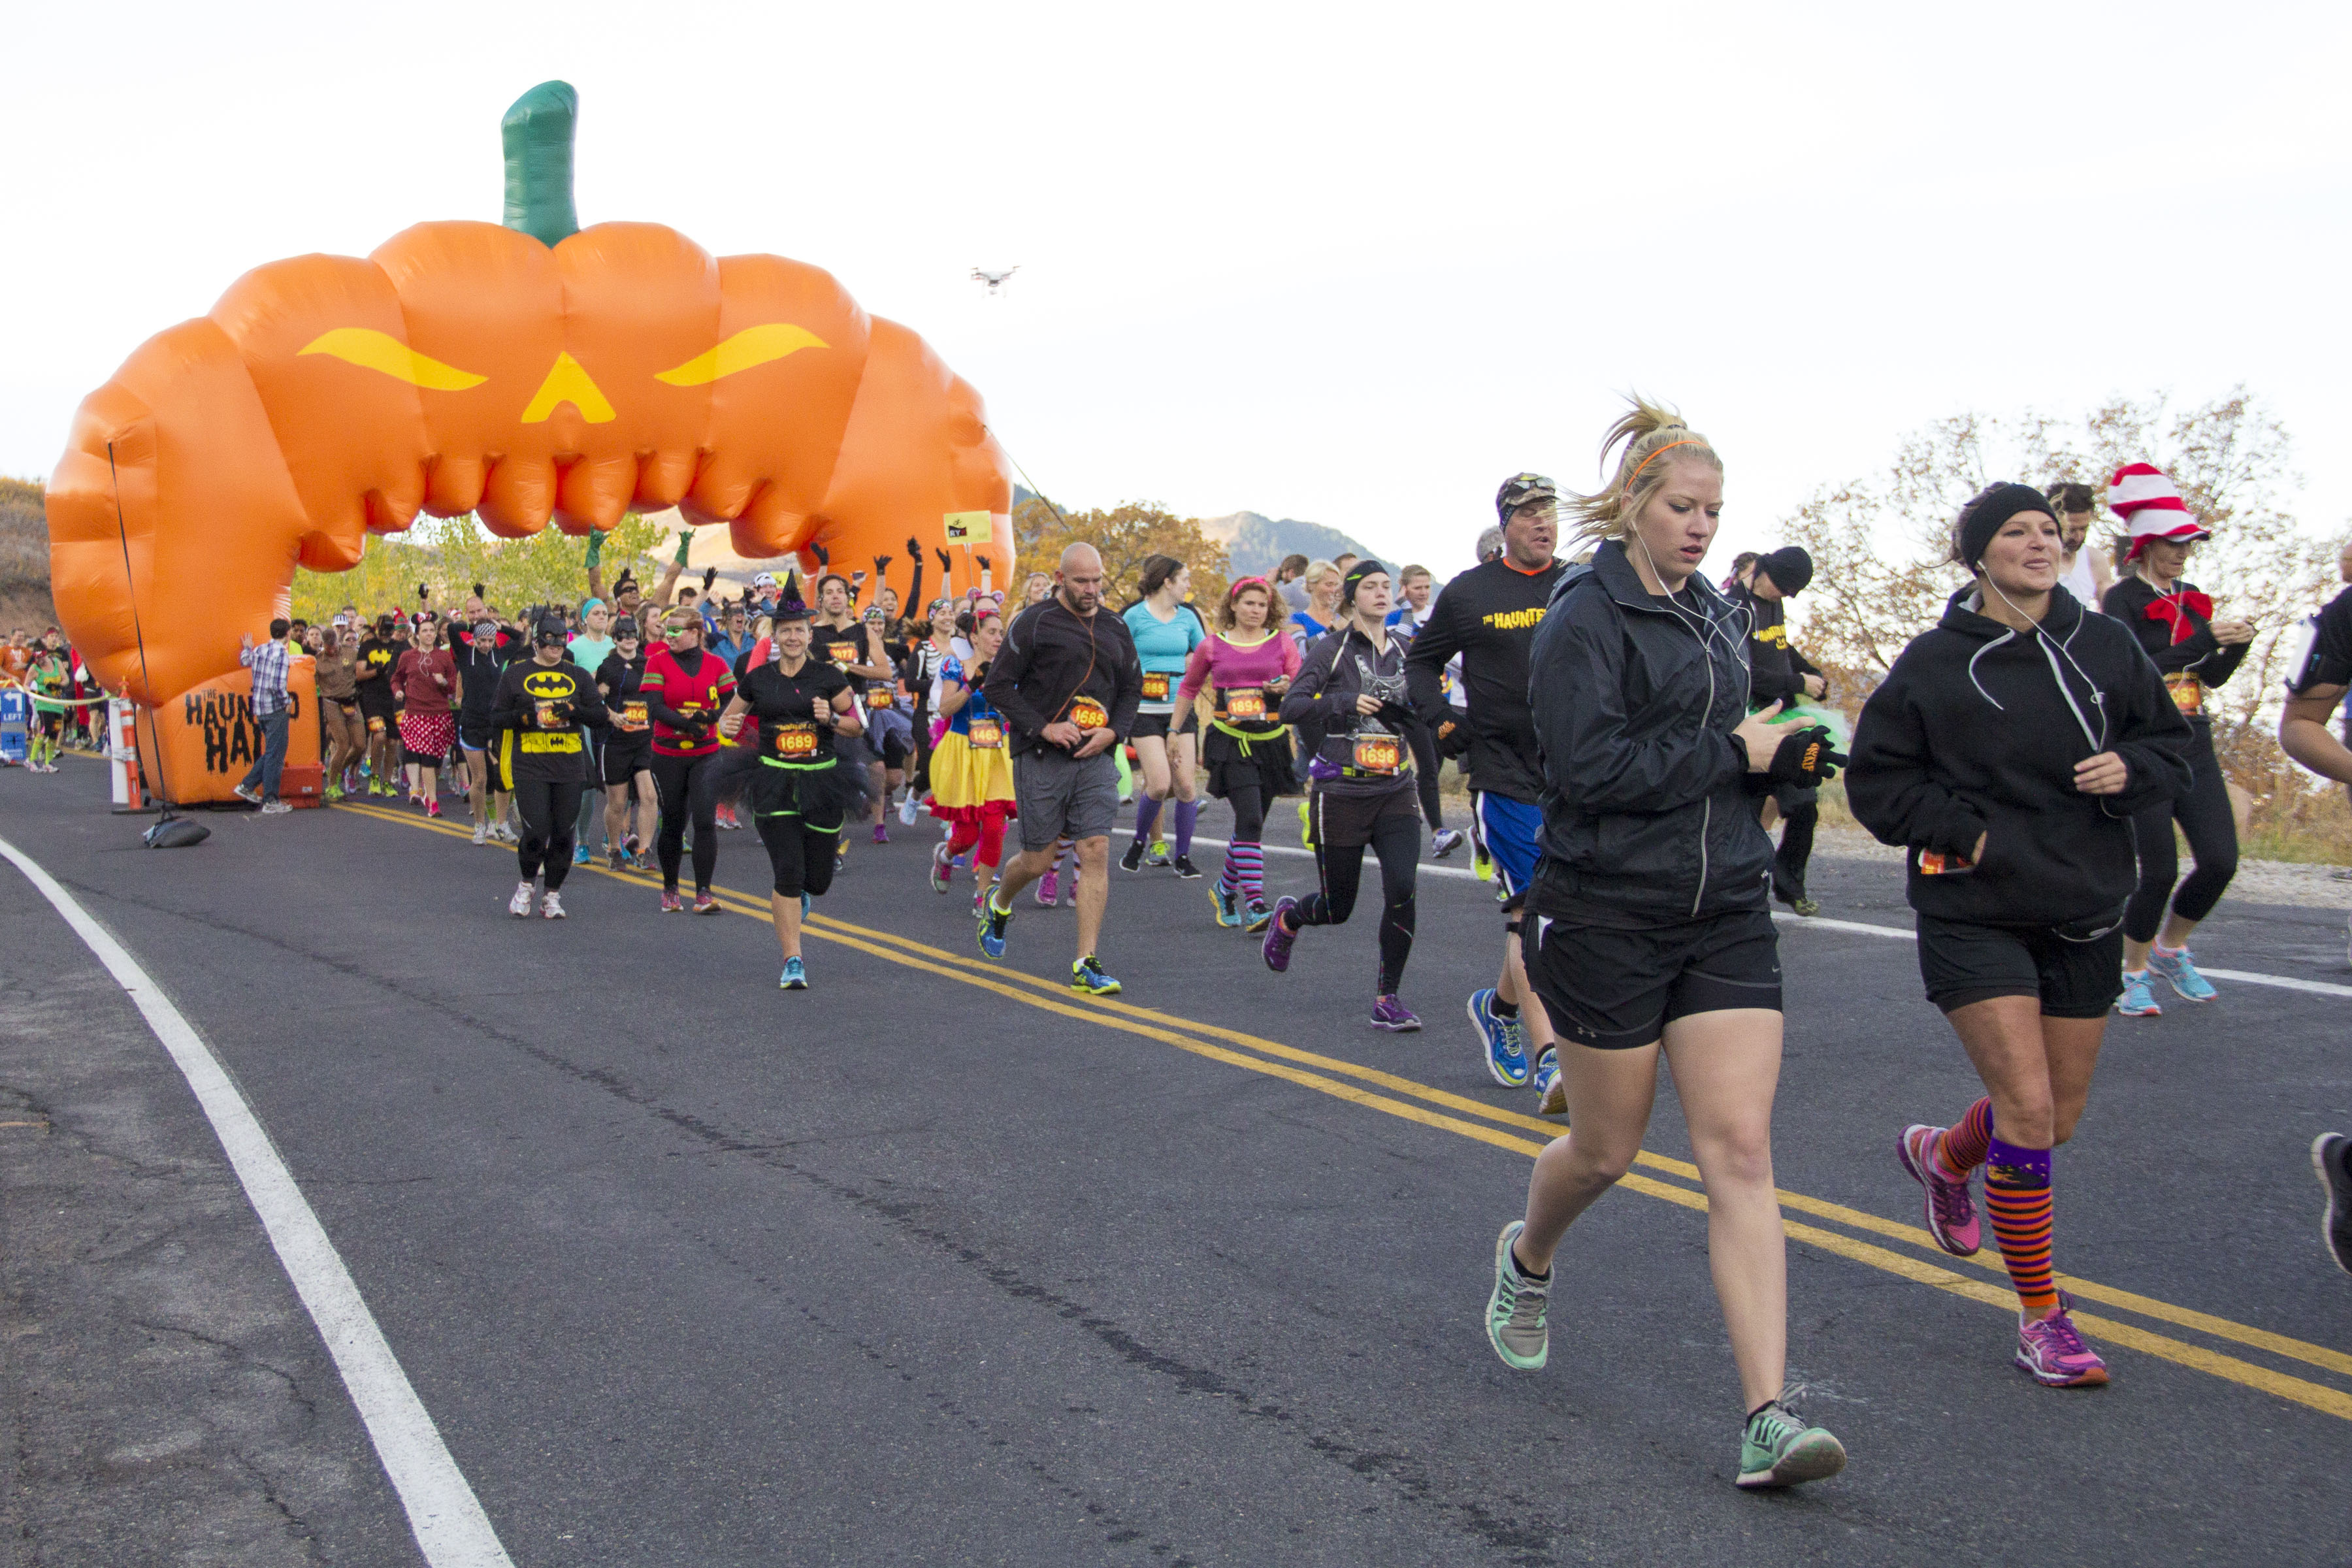 images.raceentry.com/infopages/phoenix-haunted-half-marathon-5k-and-kids-run-infopages-755.jpg